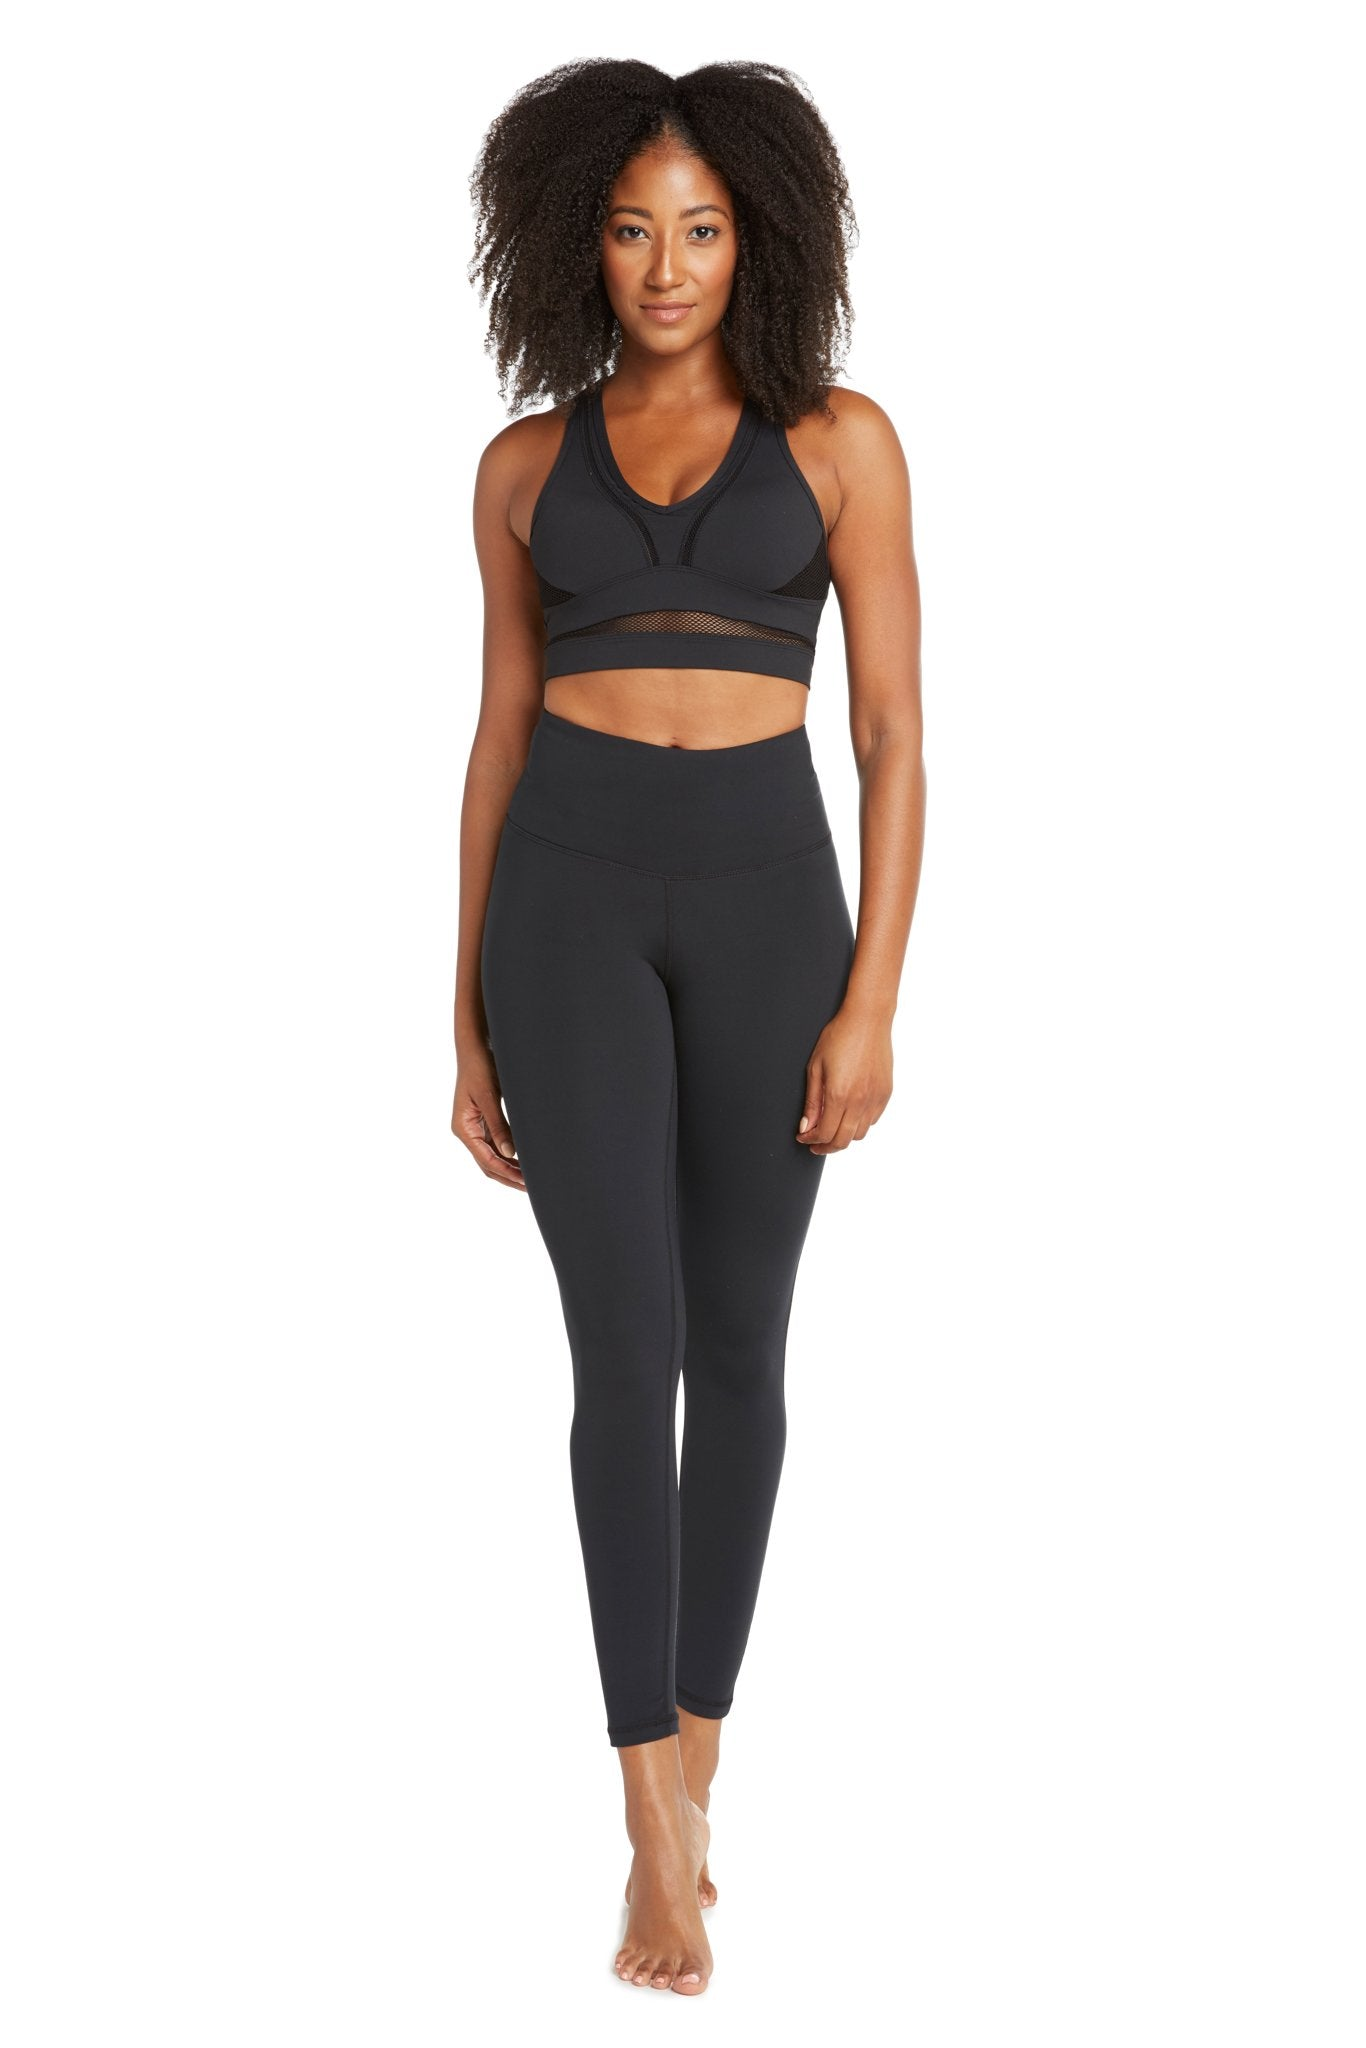 Giulia Women's High-Waist Activewear Leggings